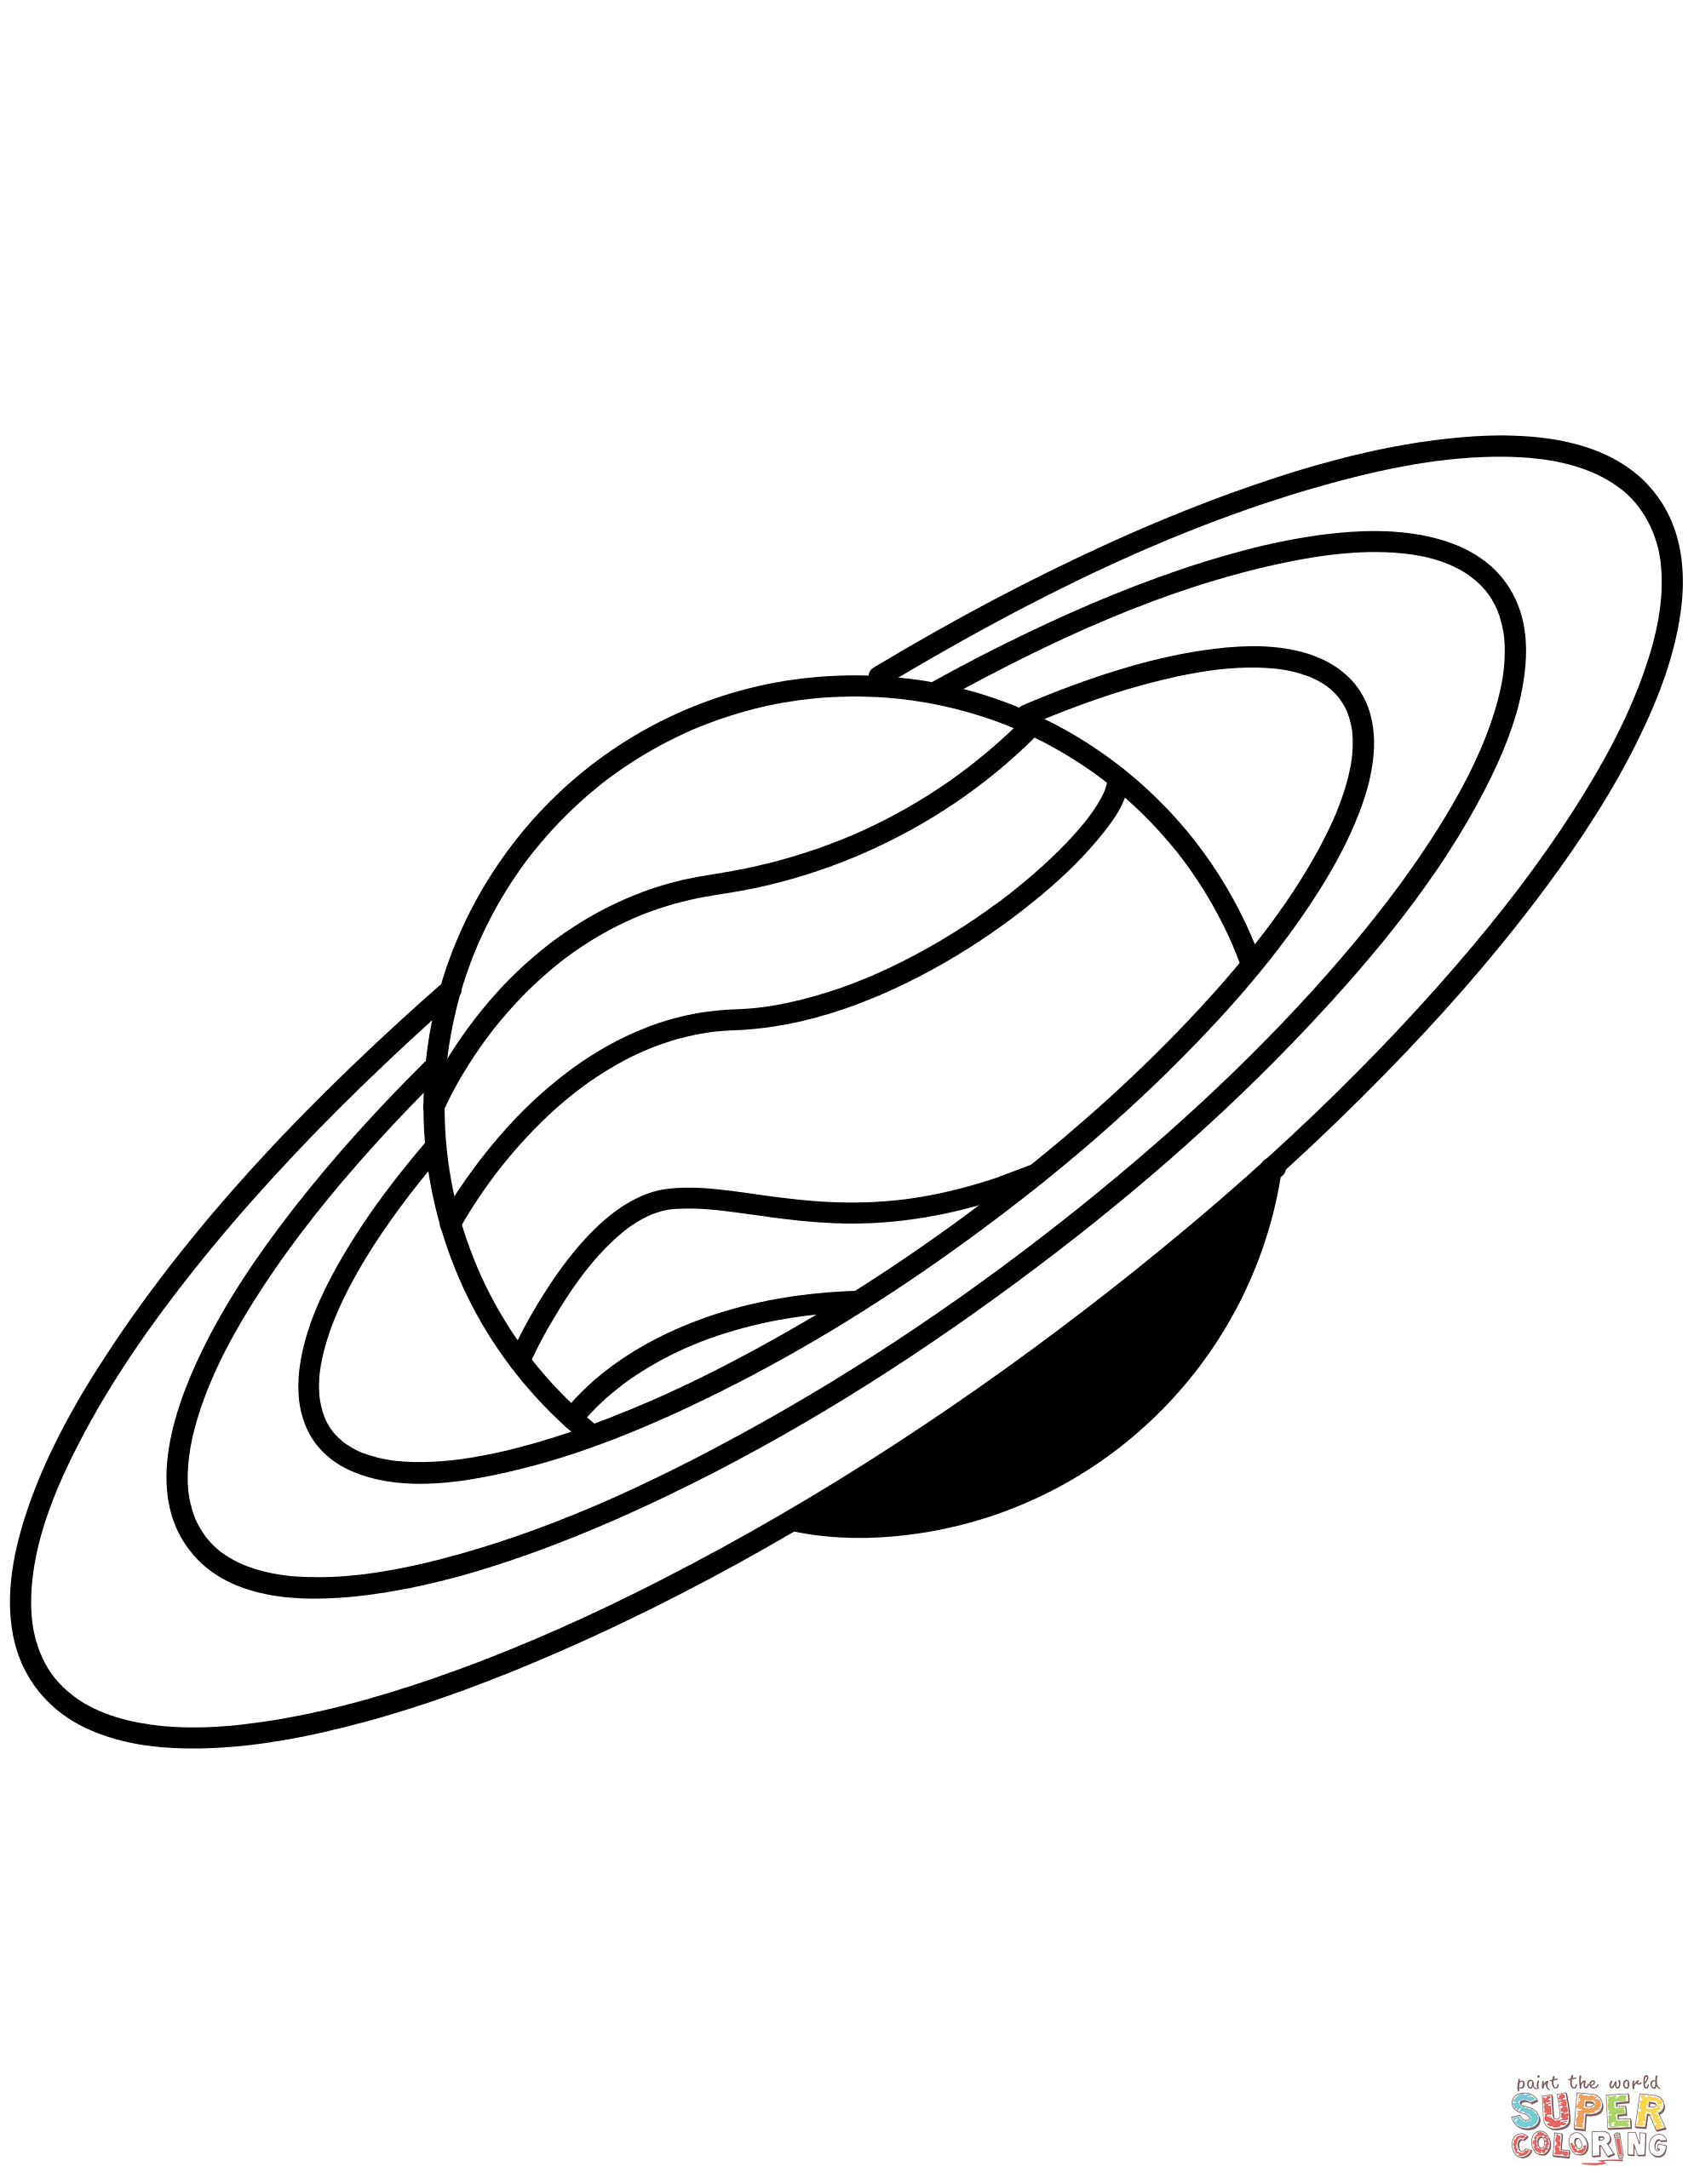 saturn colouring page printable pictures of saturn free download on clipartmag page saturn colouring